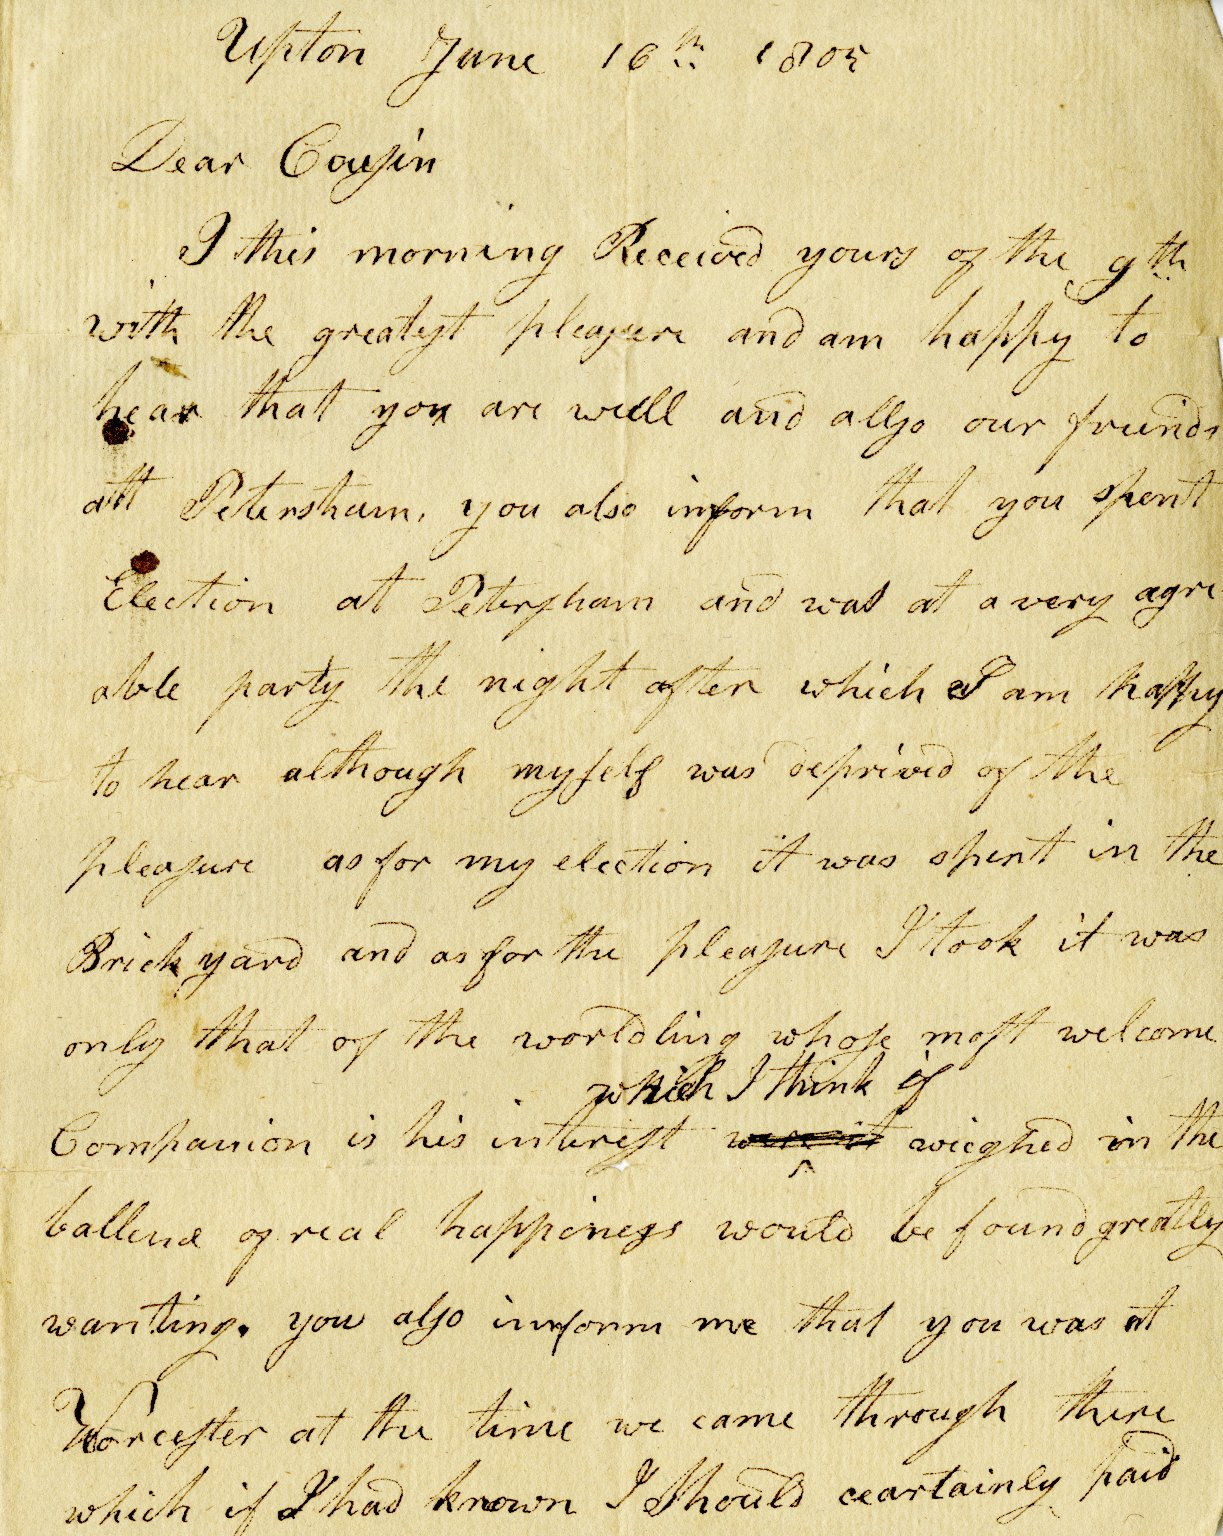 Holland, Harrison to Alden Spooner. ALS, 2 pages, June 16, 1805.